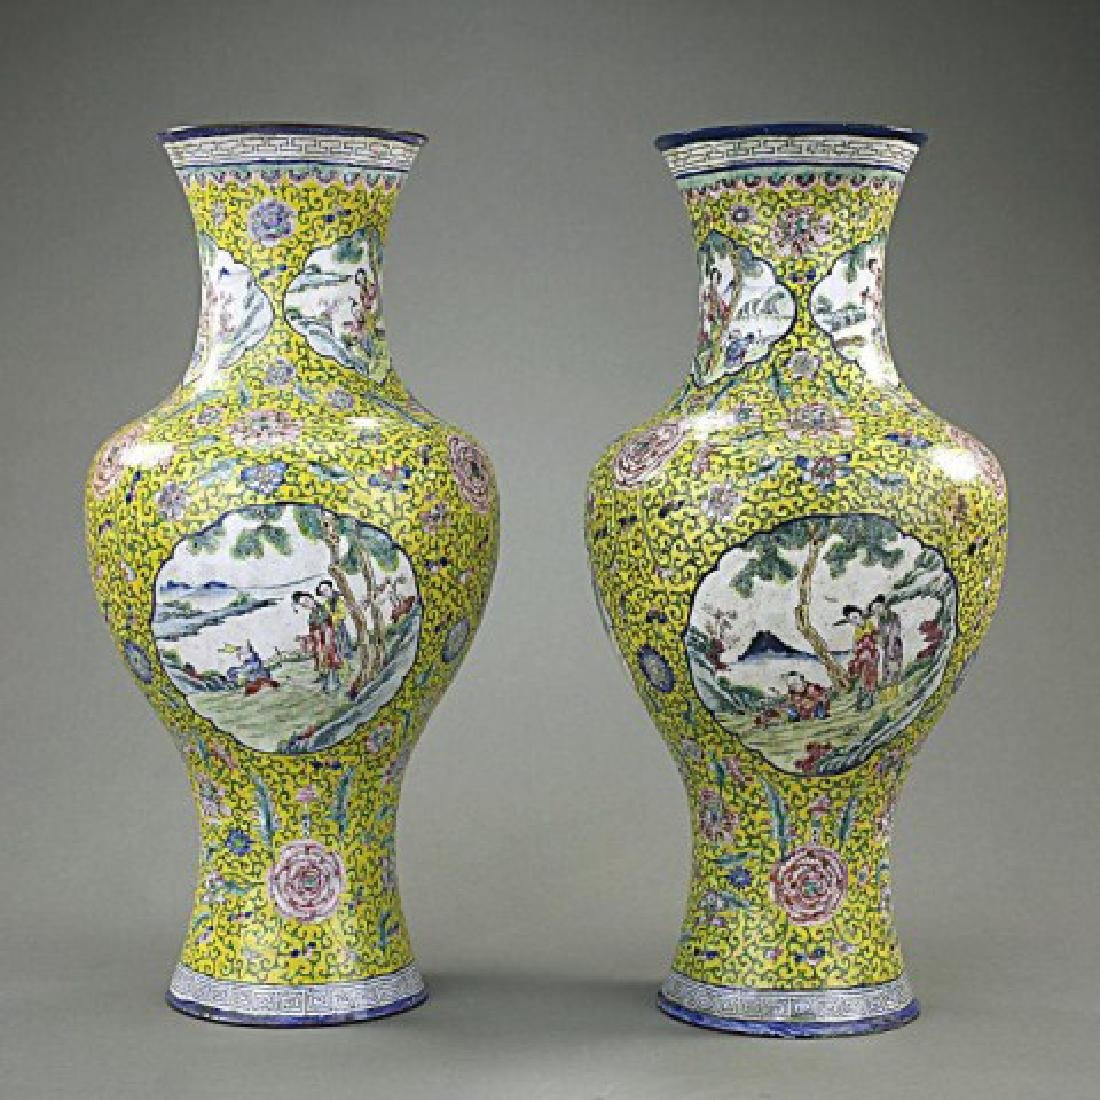 ANTIQUE PAIR OF CHINESE YELLOW GROUND ENAMEL VASES